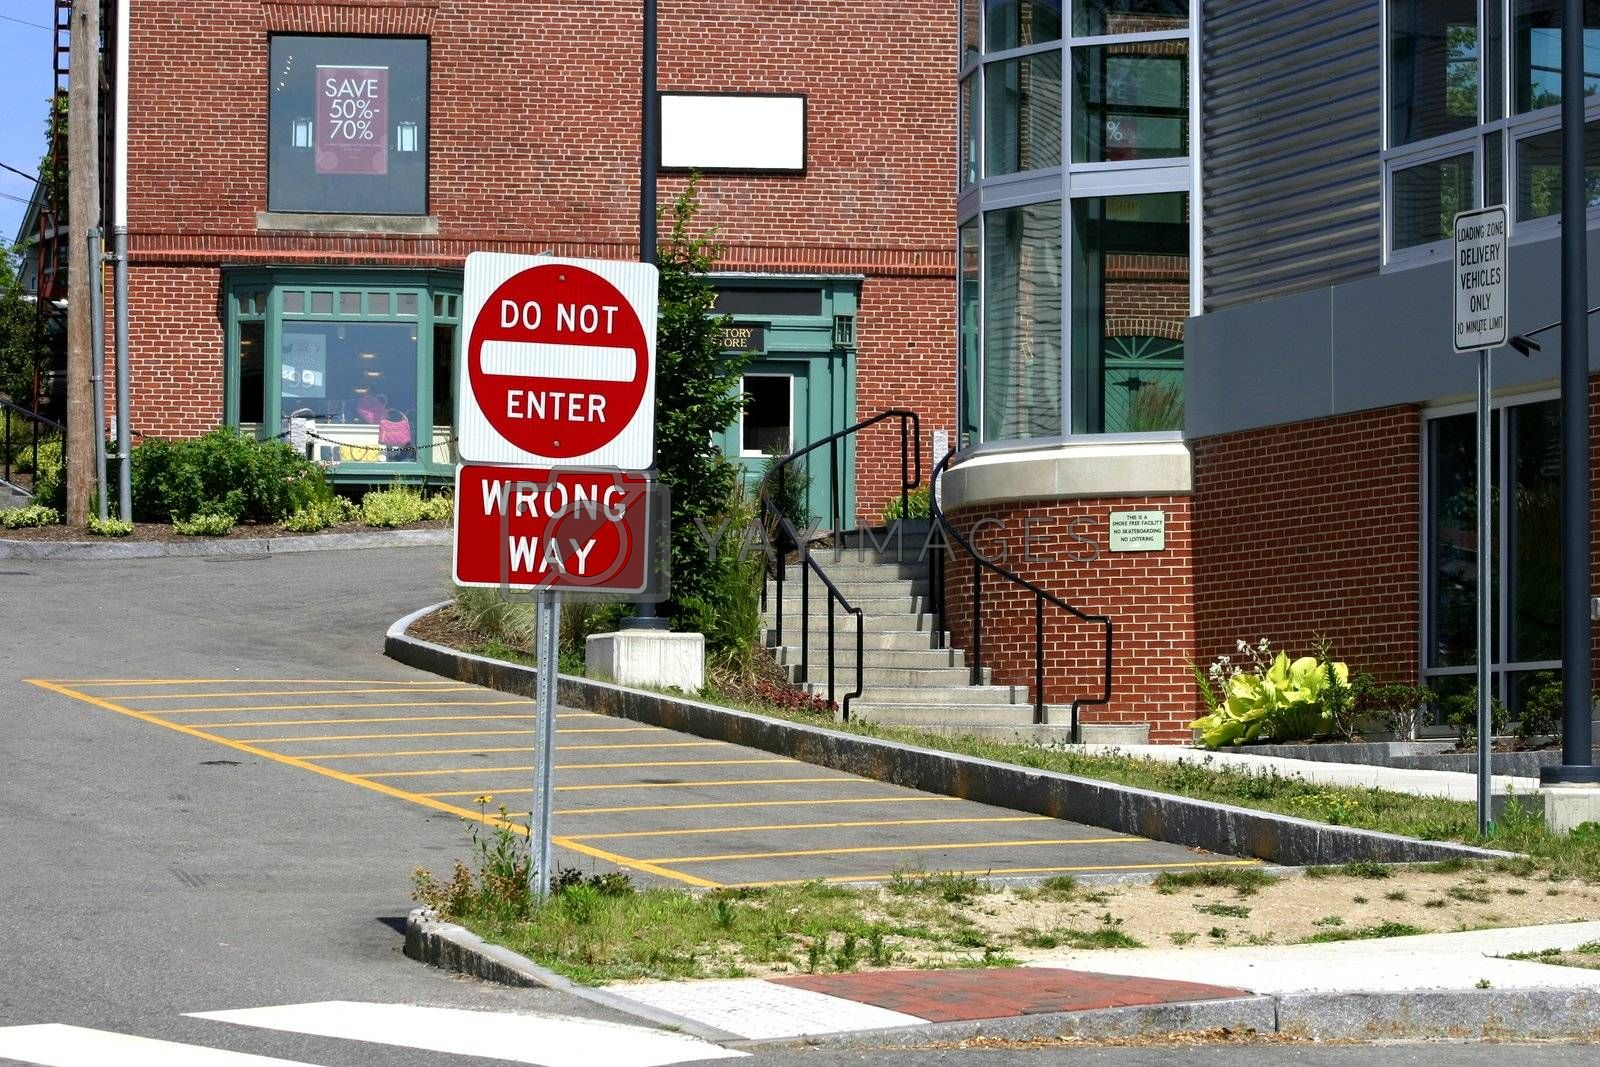 Wrong way sign at a commercial crossing for pedestrians